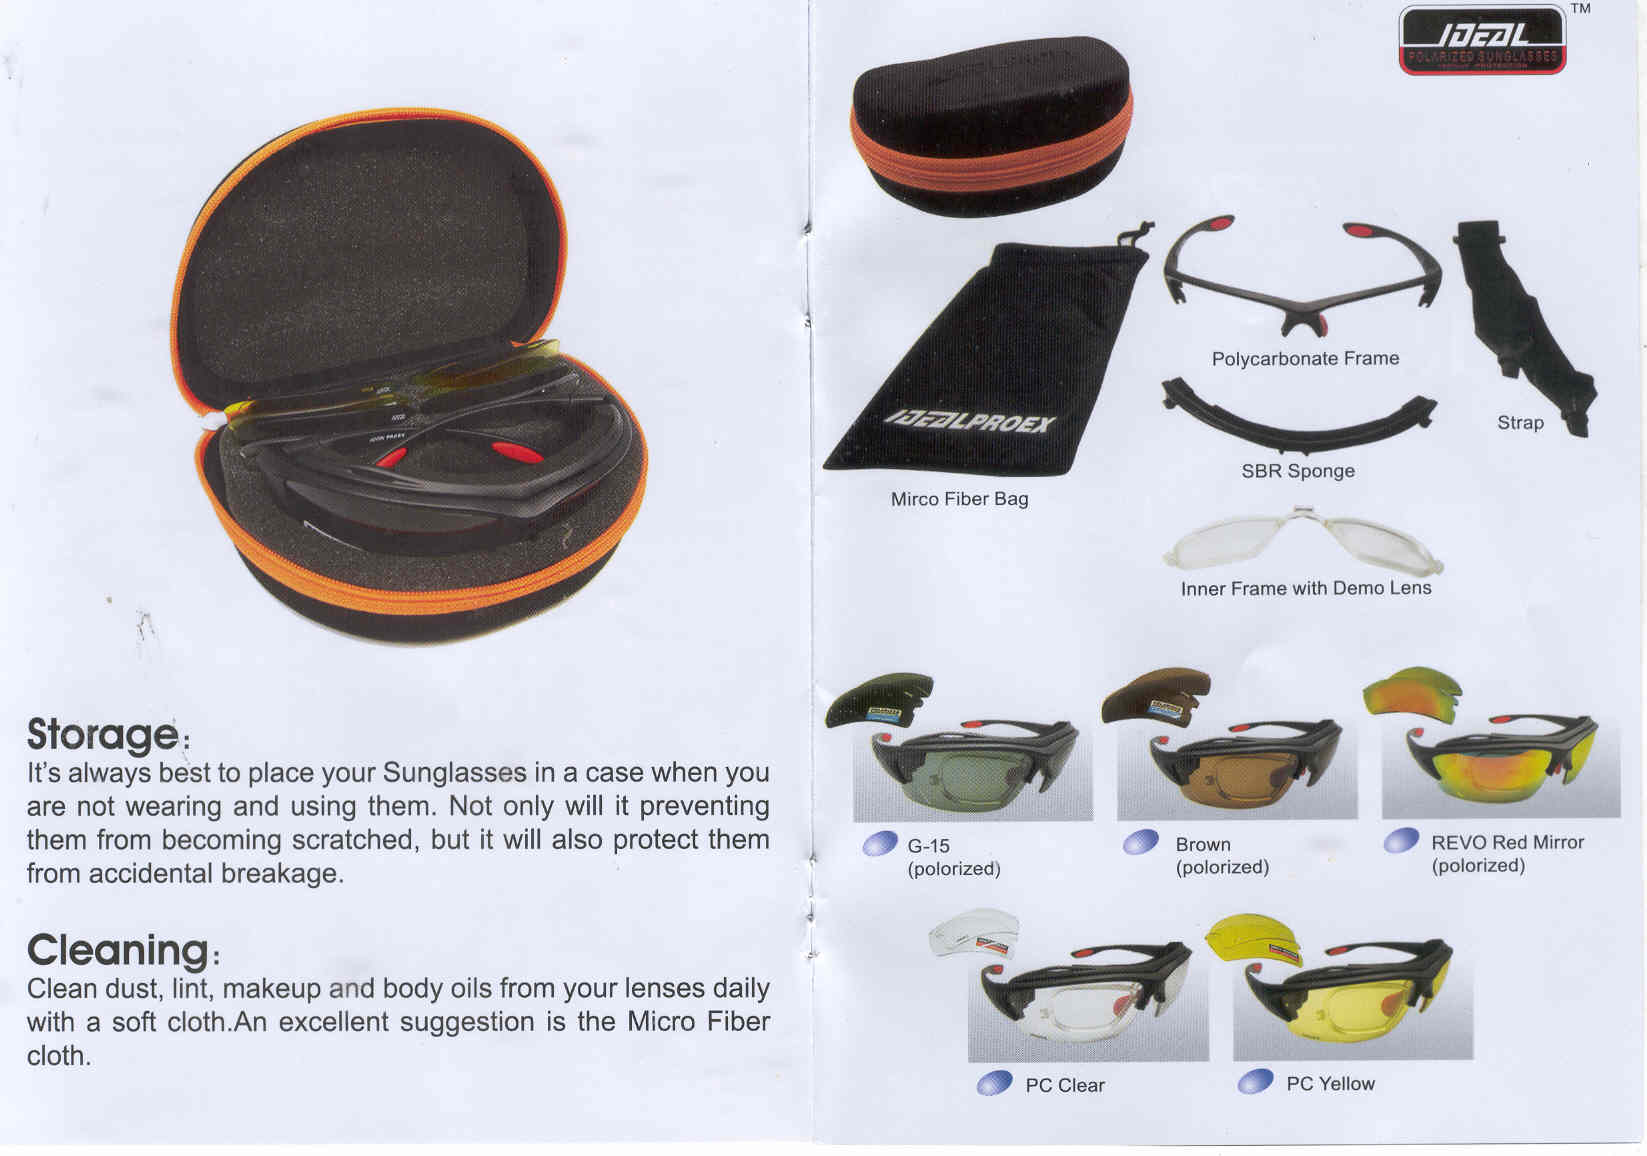 FOR SALE: Sports Sunglass with Changeable Polorized and Prescription lenses